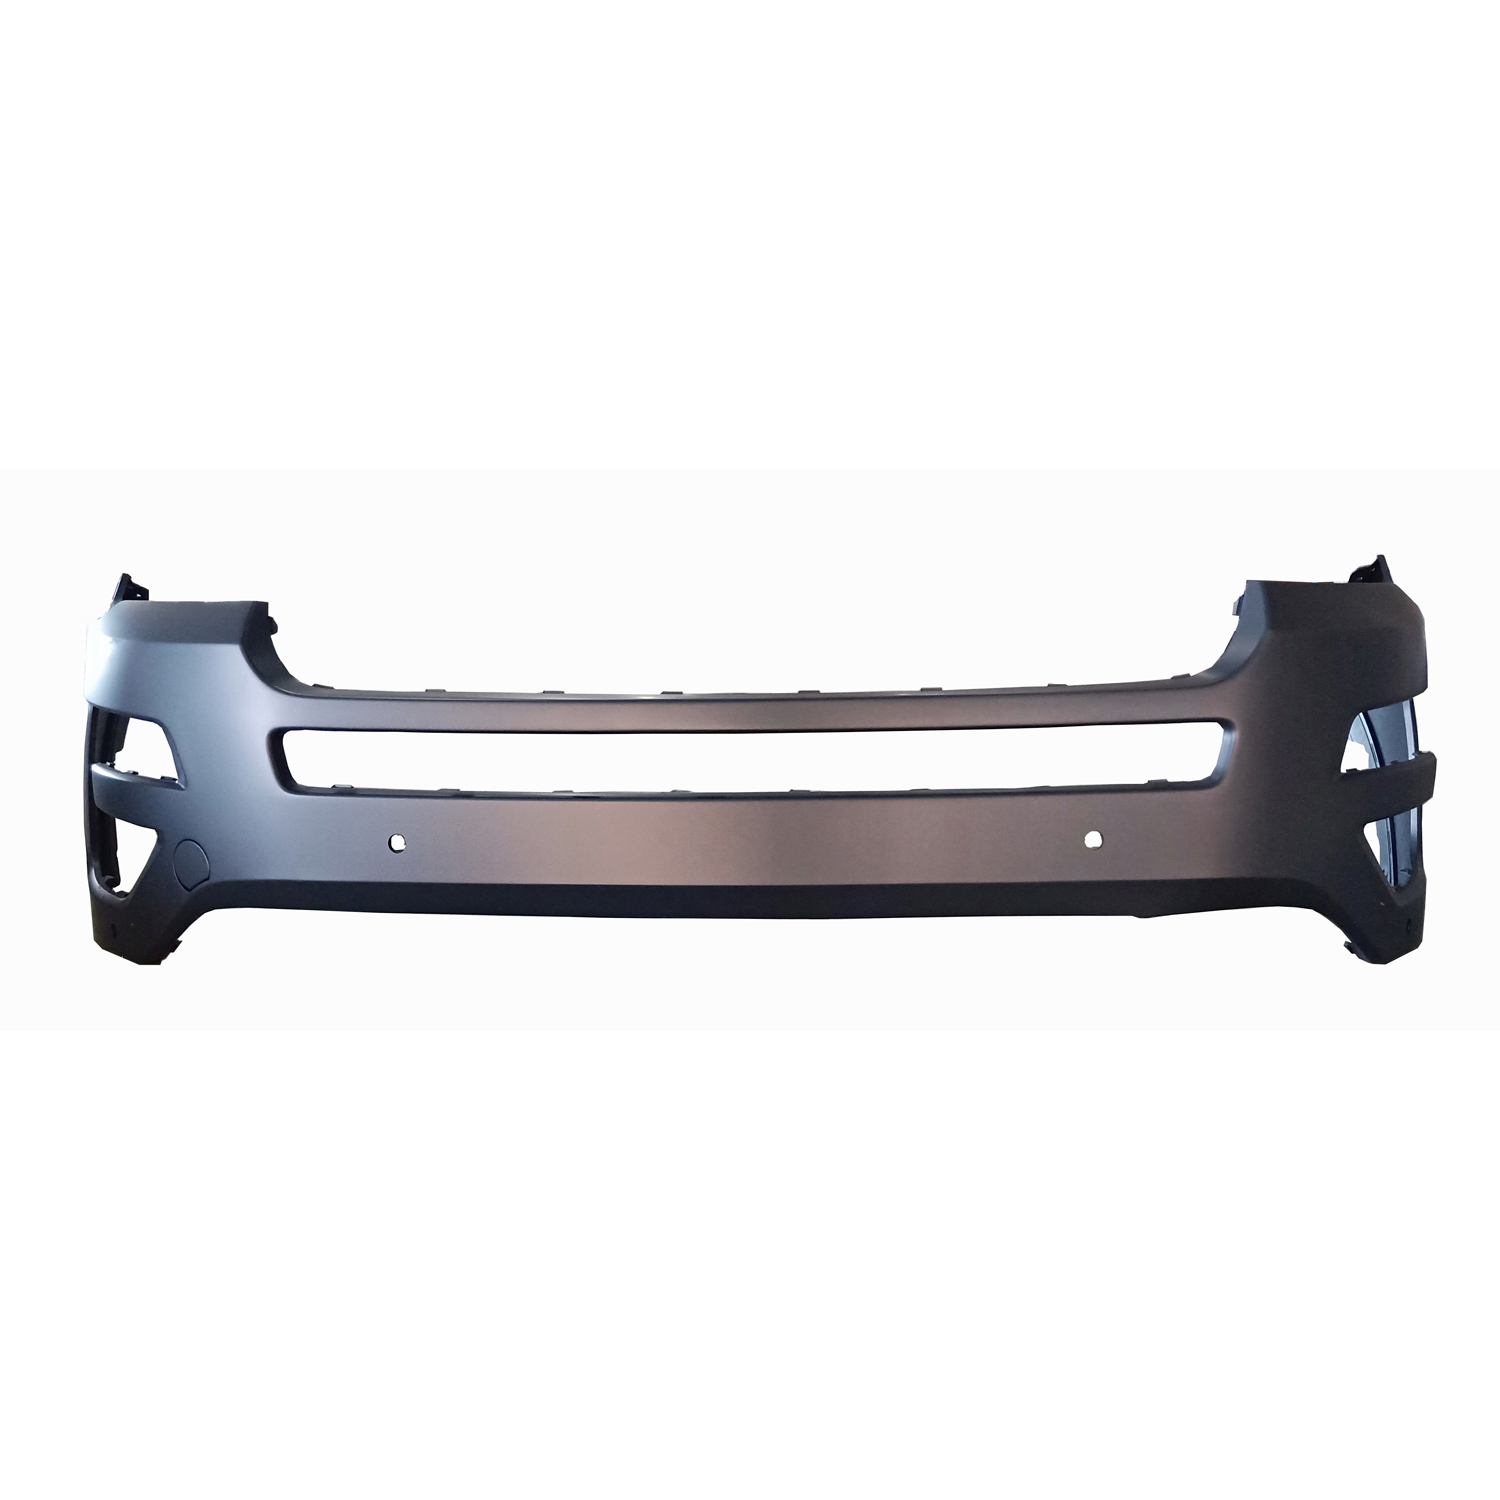 Fits 2016-2017 Ford Explorer Front Lower Bumper Cover 101-01805B CAPA